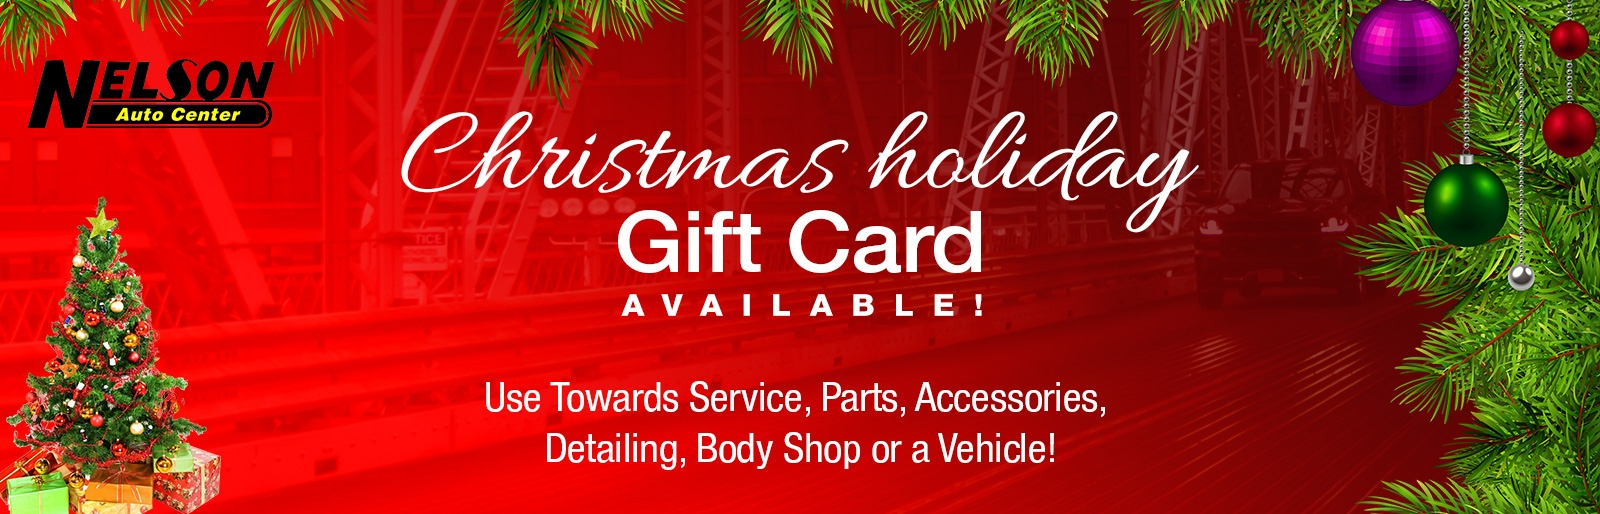 Christmas holiday gift cards available